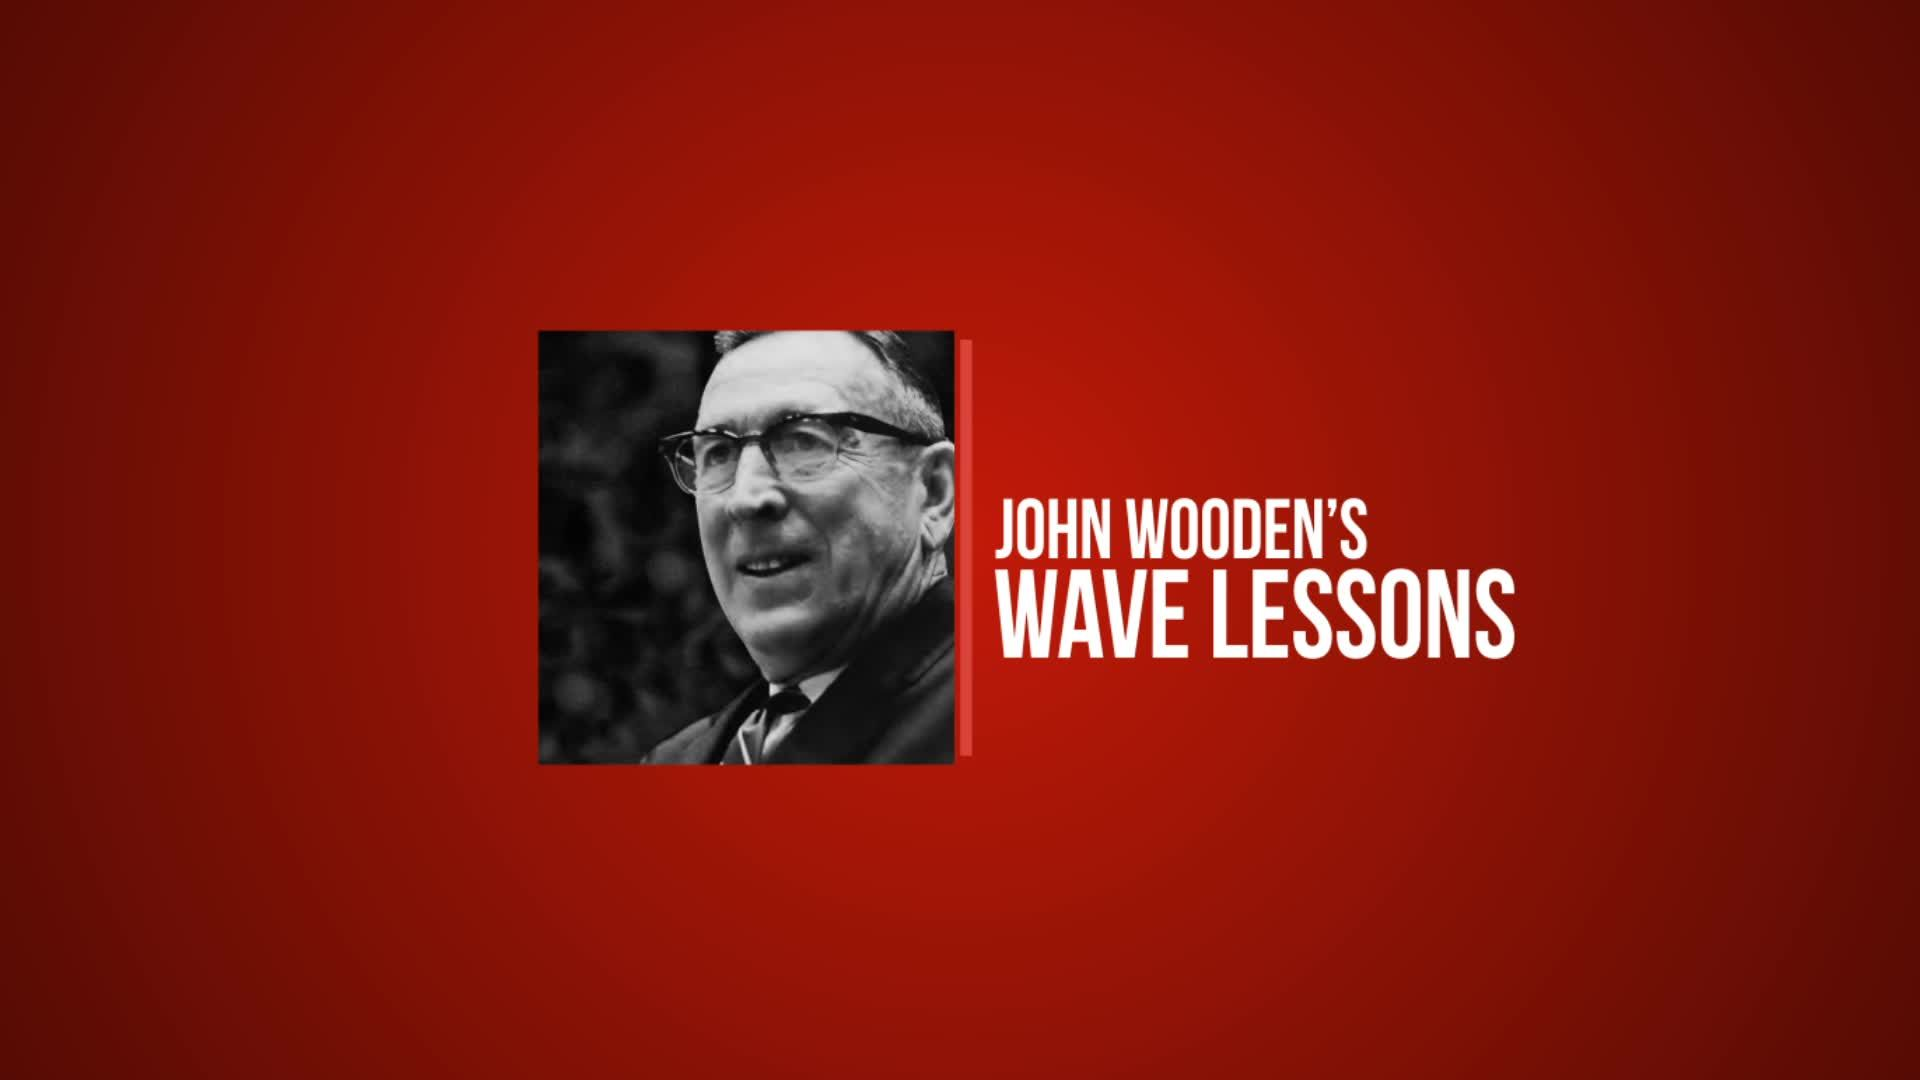 John Wooden's Wave Lessons